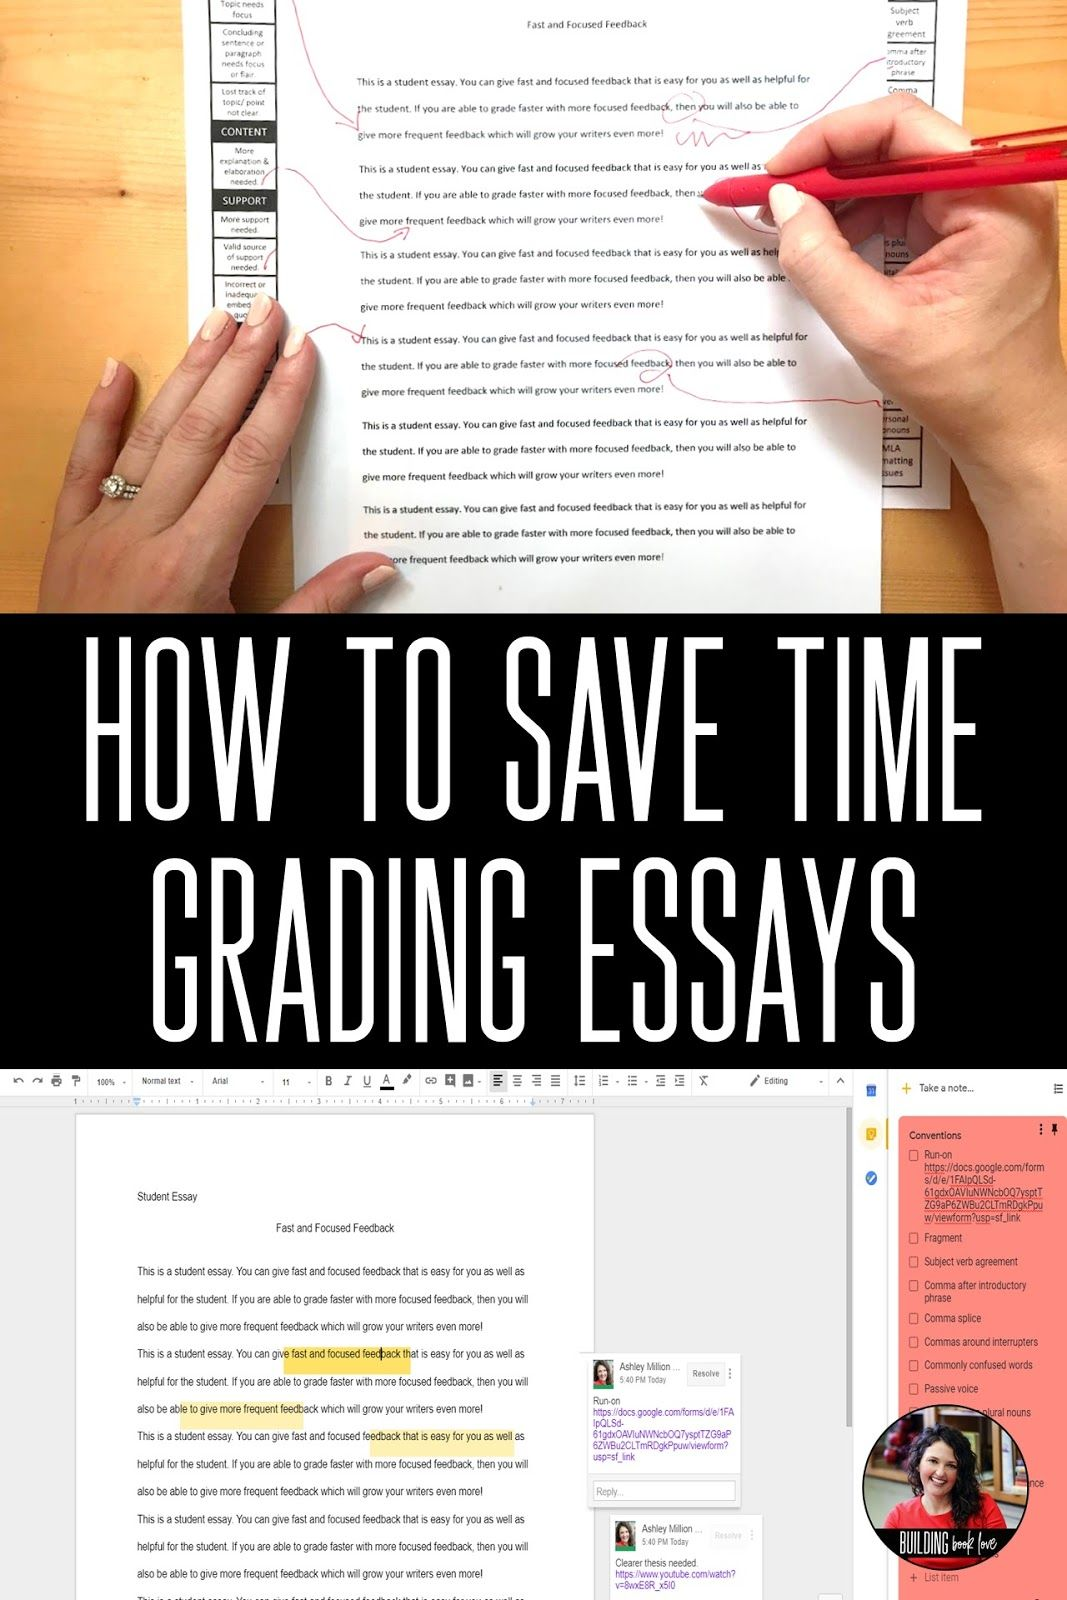 essay grading tips for grading essays faster and more efficiently  building book love   essay grading tips for grading essays faster and  more efficiently save time grading essays online or in print